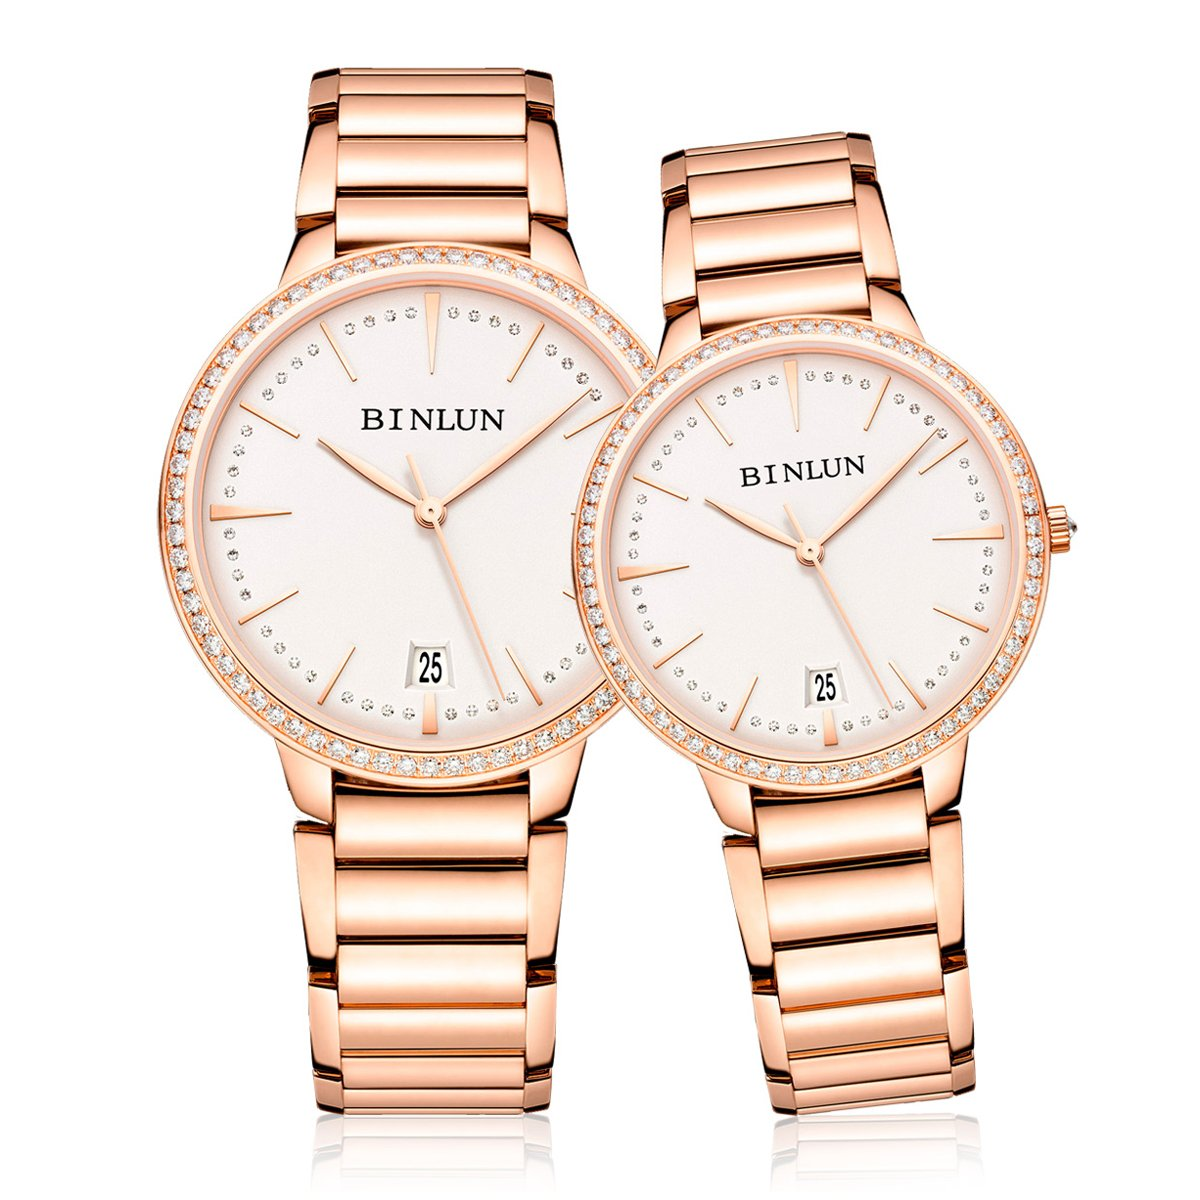 BINLUN Pair His and Hers Couple Watches Men Women 2pcs/set Ultra Thin Automatic Watches 18k Rose Gold